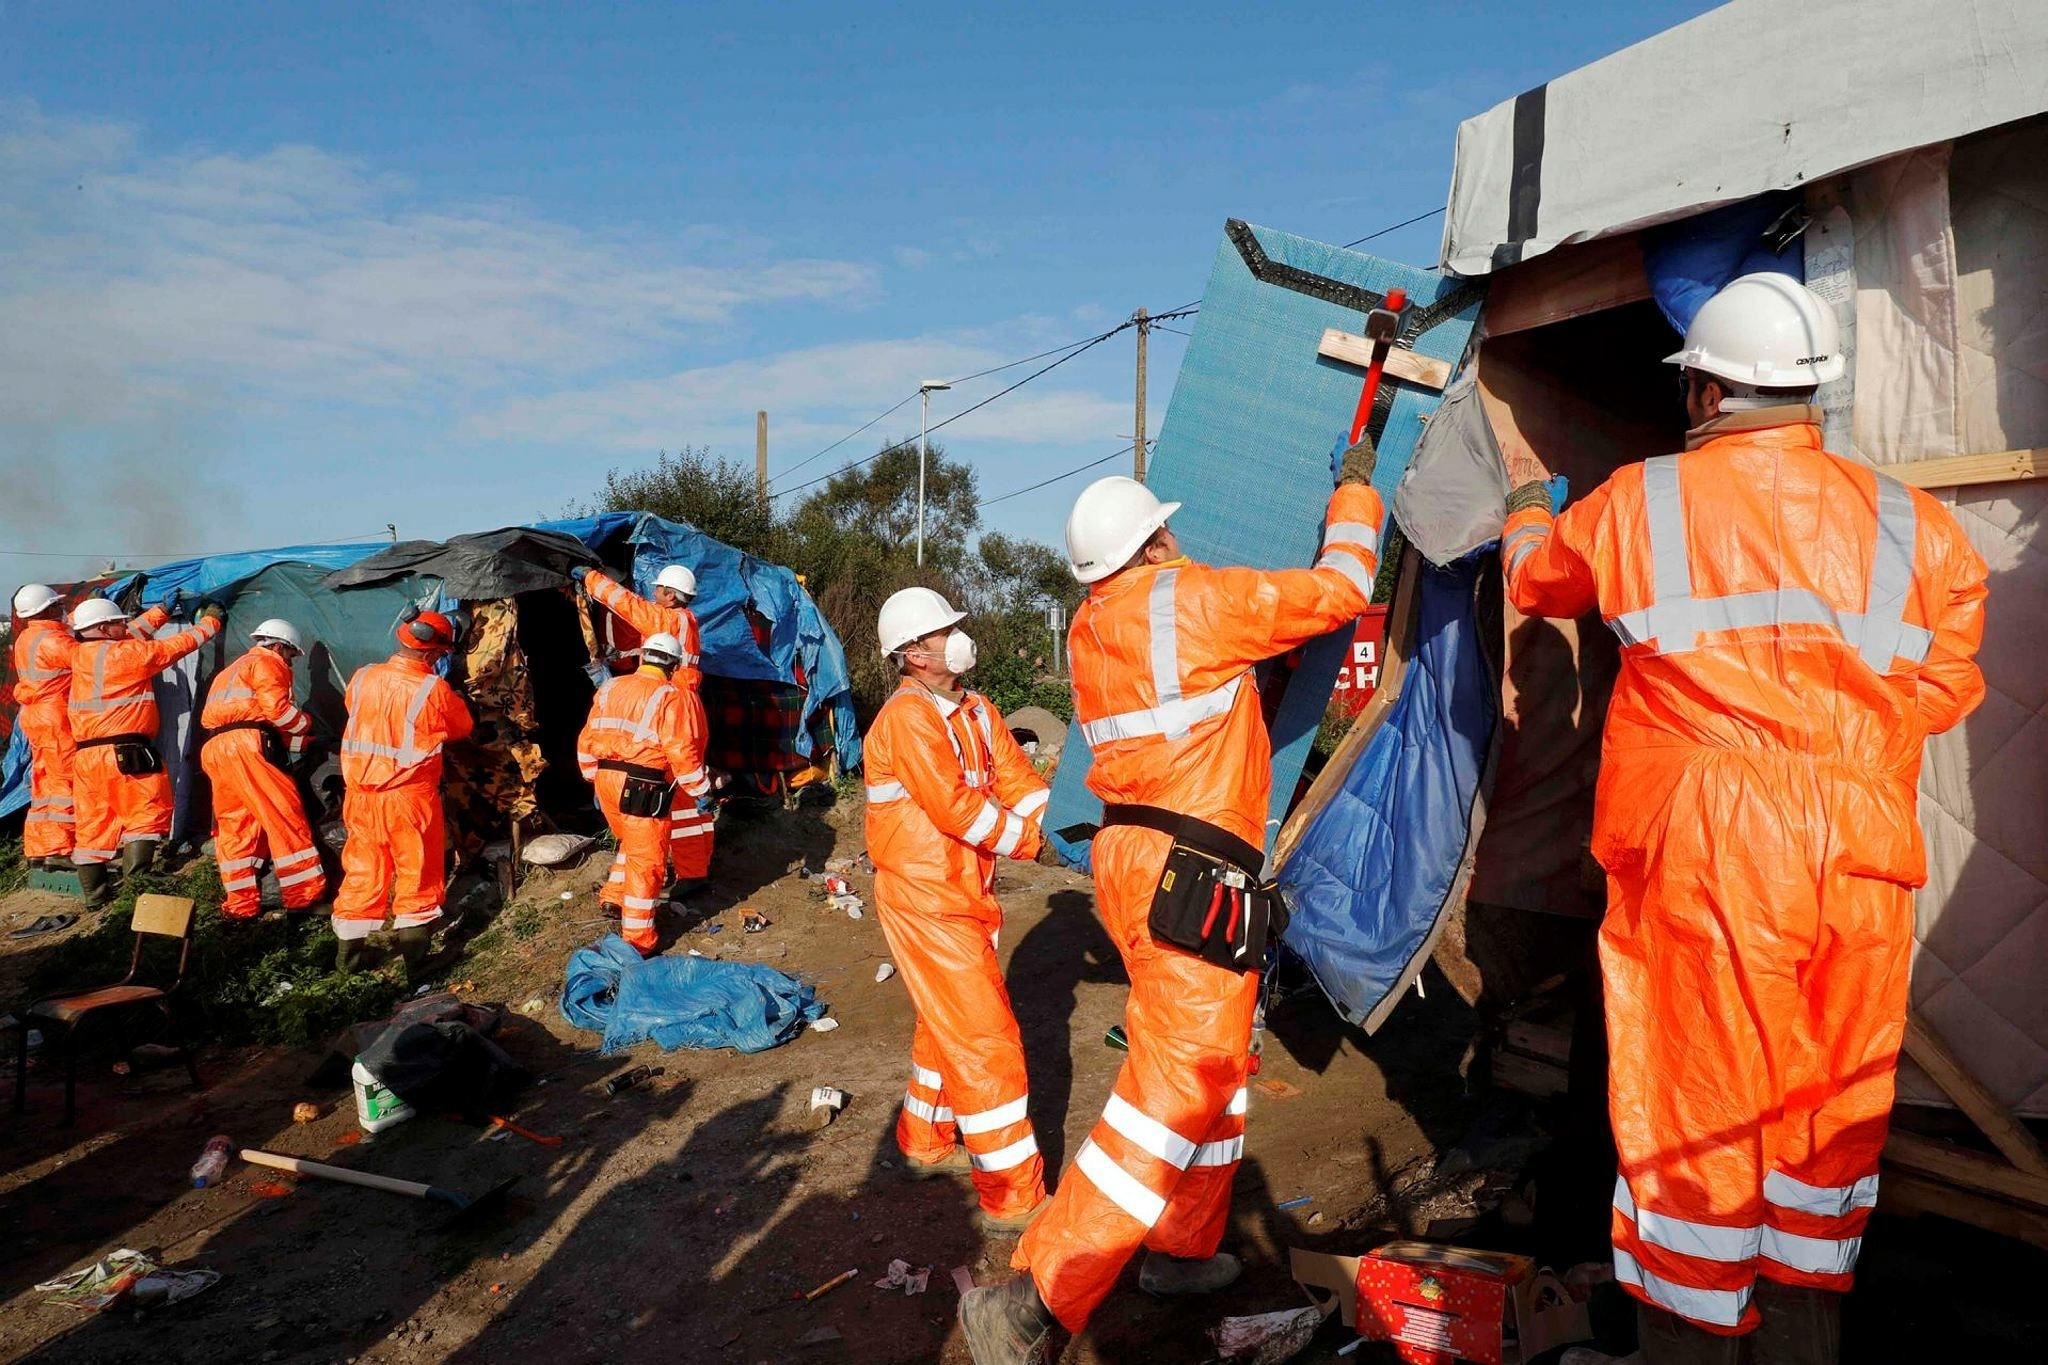 Workmen tear down makeshift shelters on the second day the evacuation of migrants and their transfer to reception centers in France. (Reuters Photo)